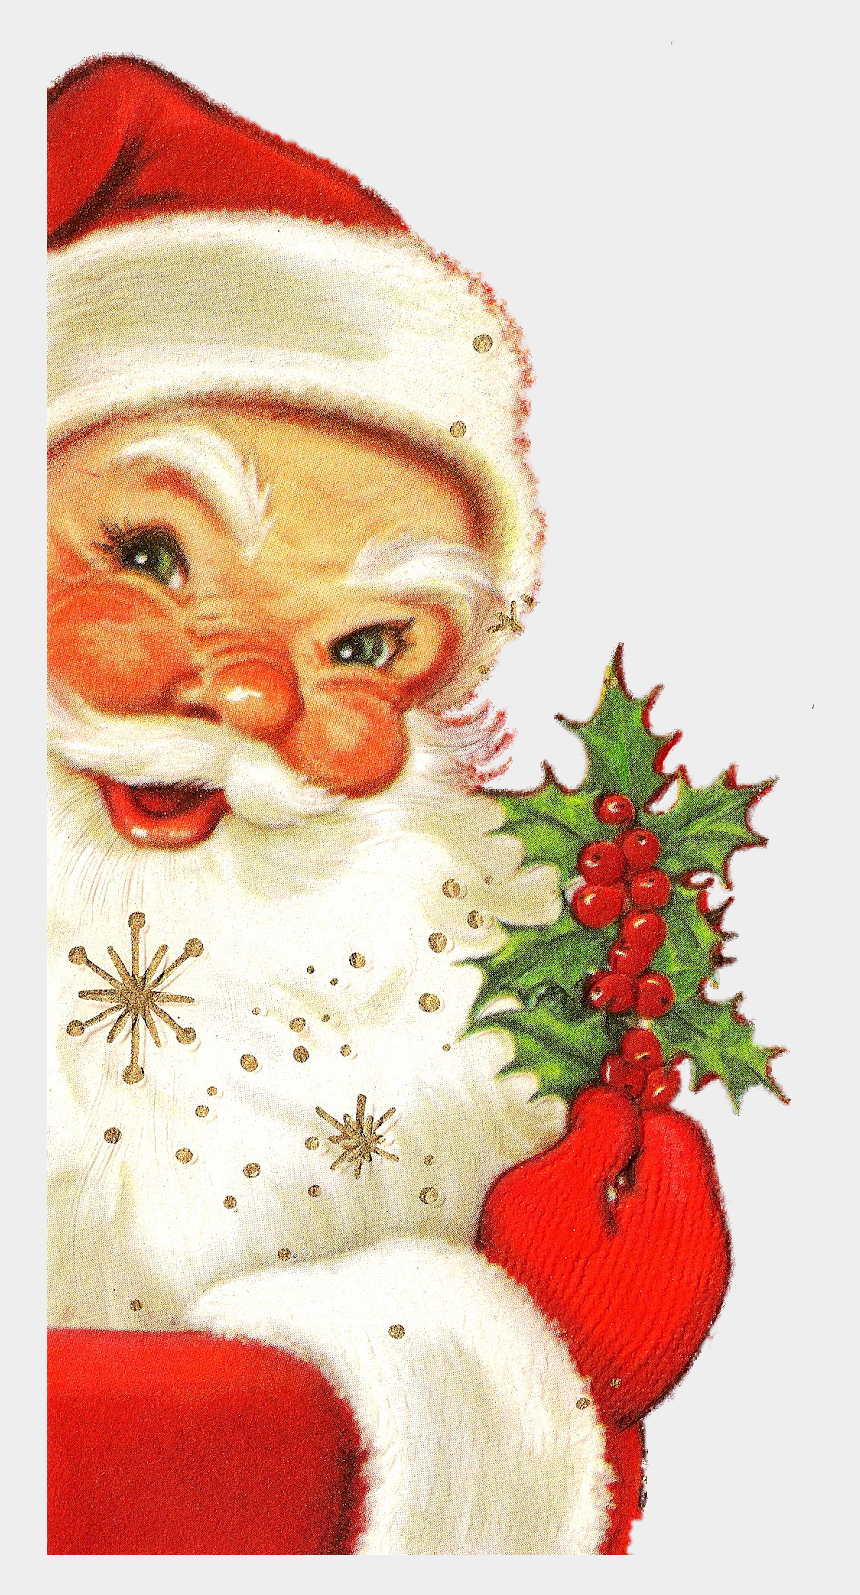 peek clipart, Cartoons - Christmas Father Png - Vintage Santa Merry Christmas